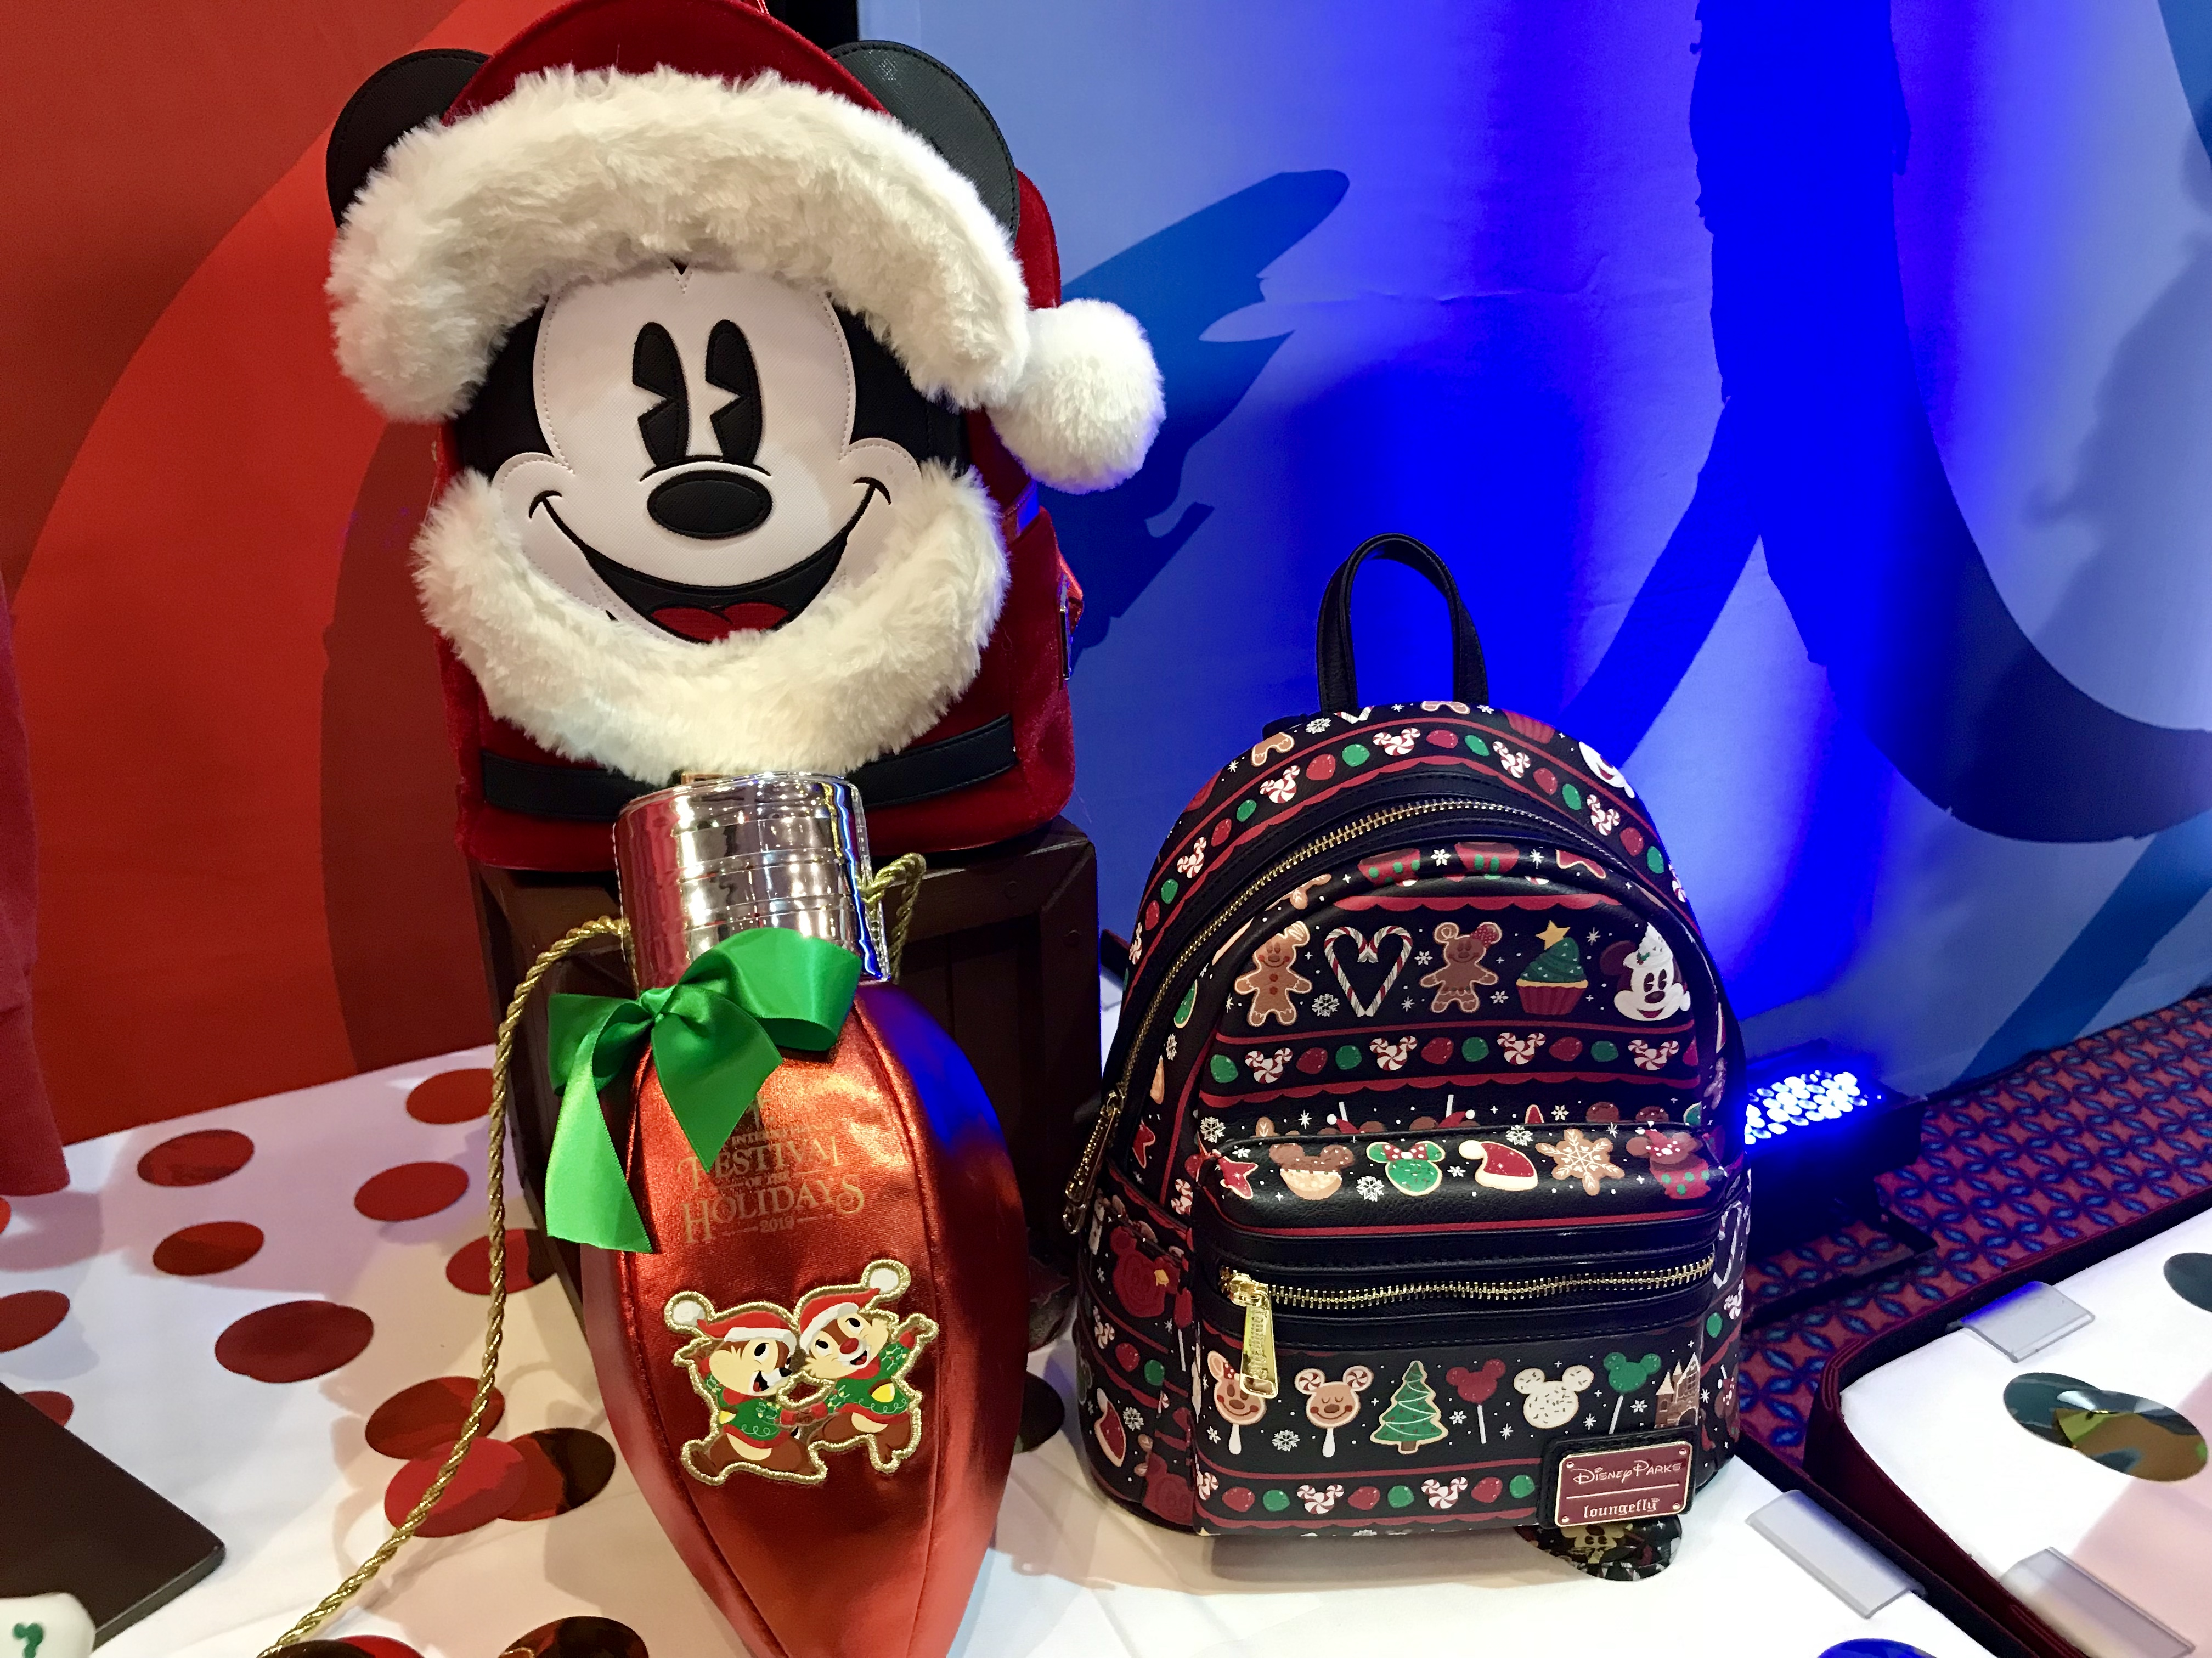 Festive New Disney Holiday Bags From Loungefly And More 1